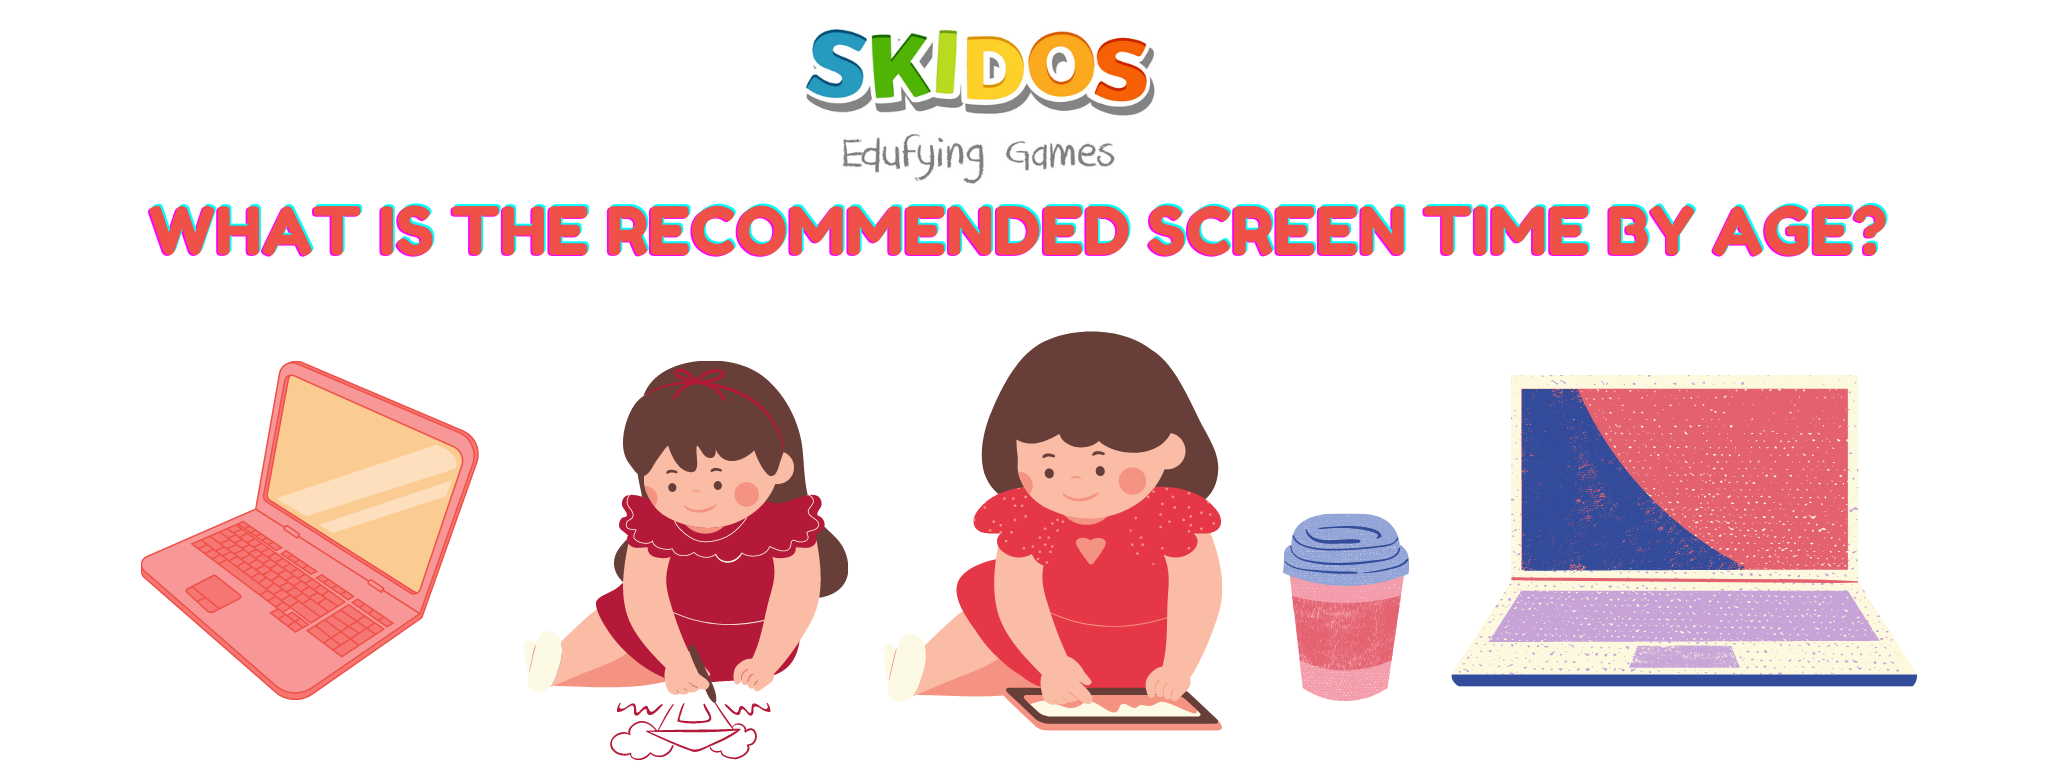 What is the recommended screen time for kids by age